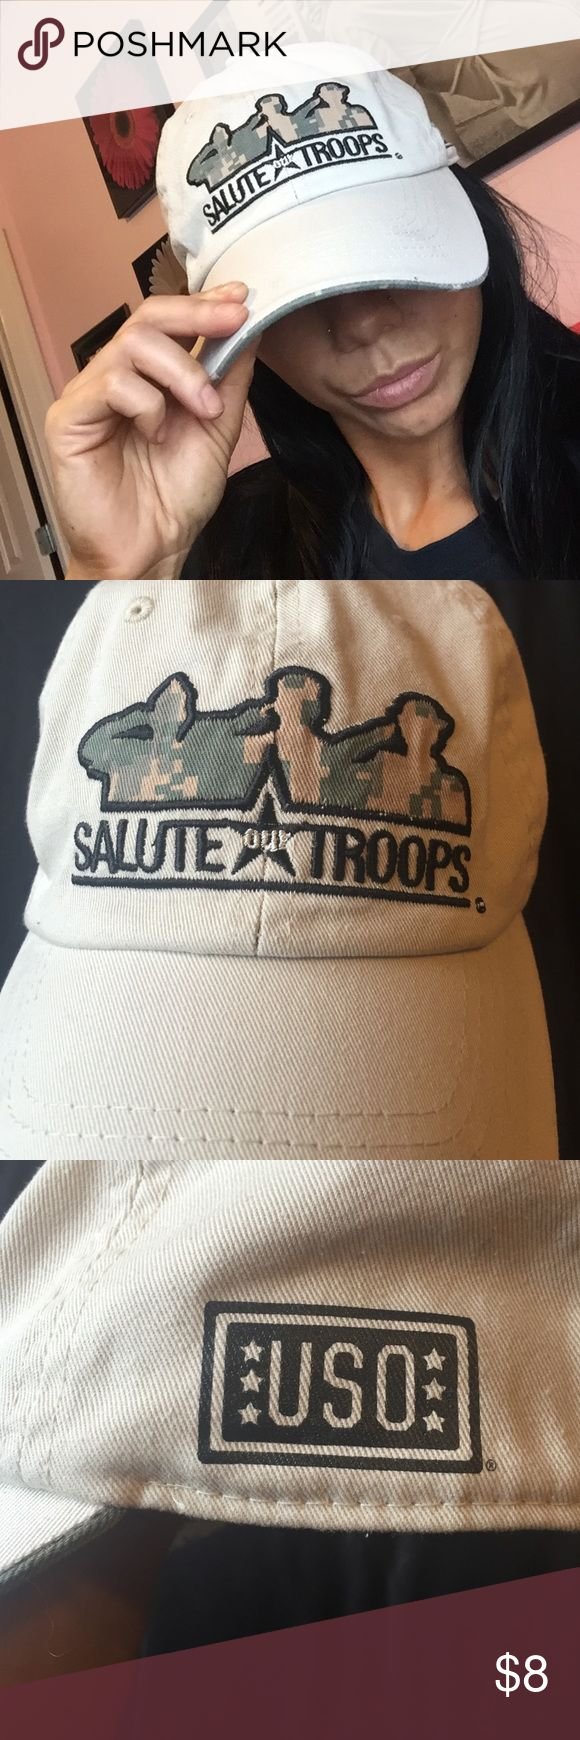 Salute our troops USO hat Khaki and camouflage Salute our Troops USO hat from kangaroo express. Accessories Hats